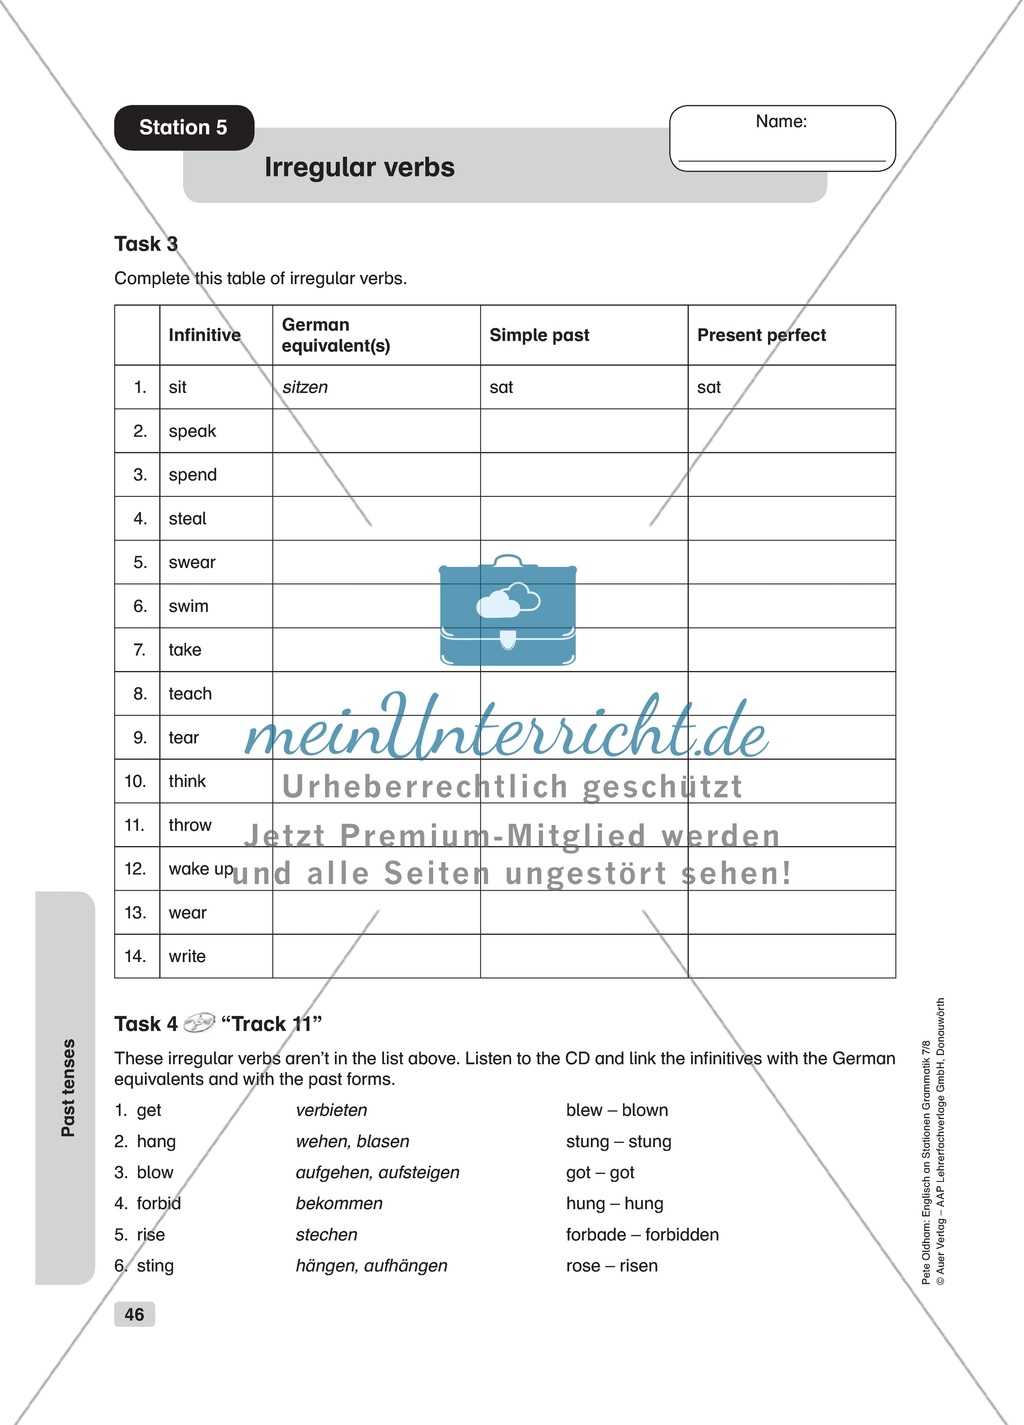 Grammar Irregular Verbs Worksheet And Solution